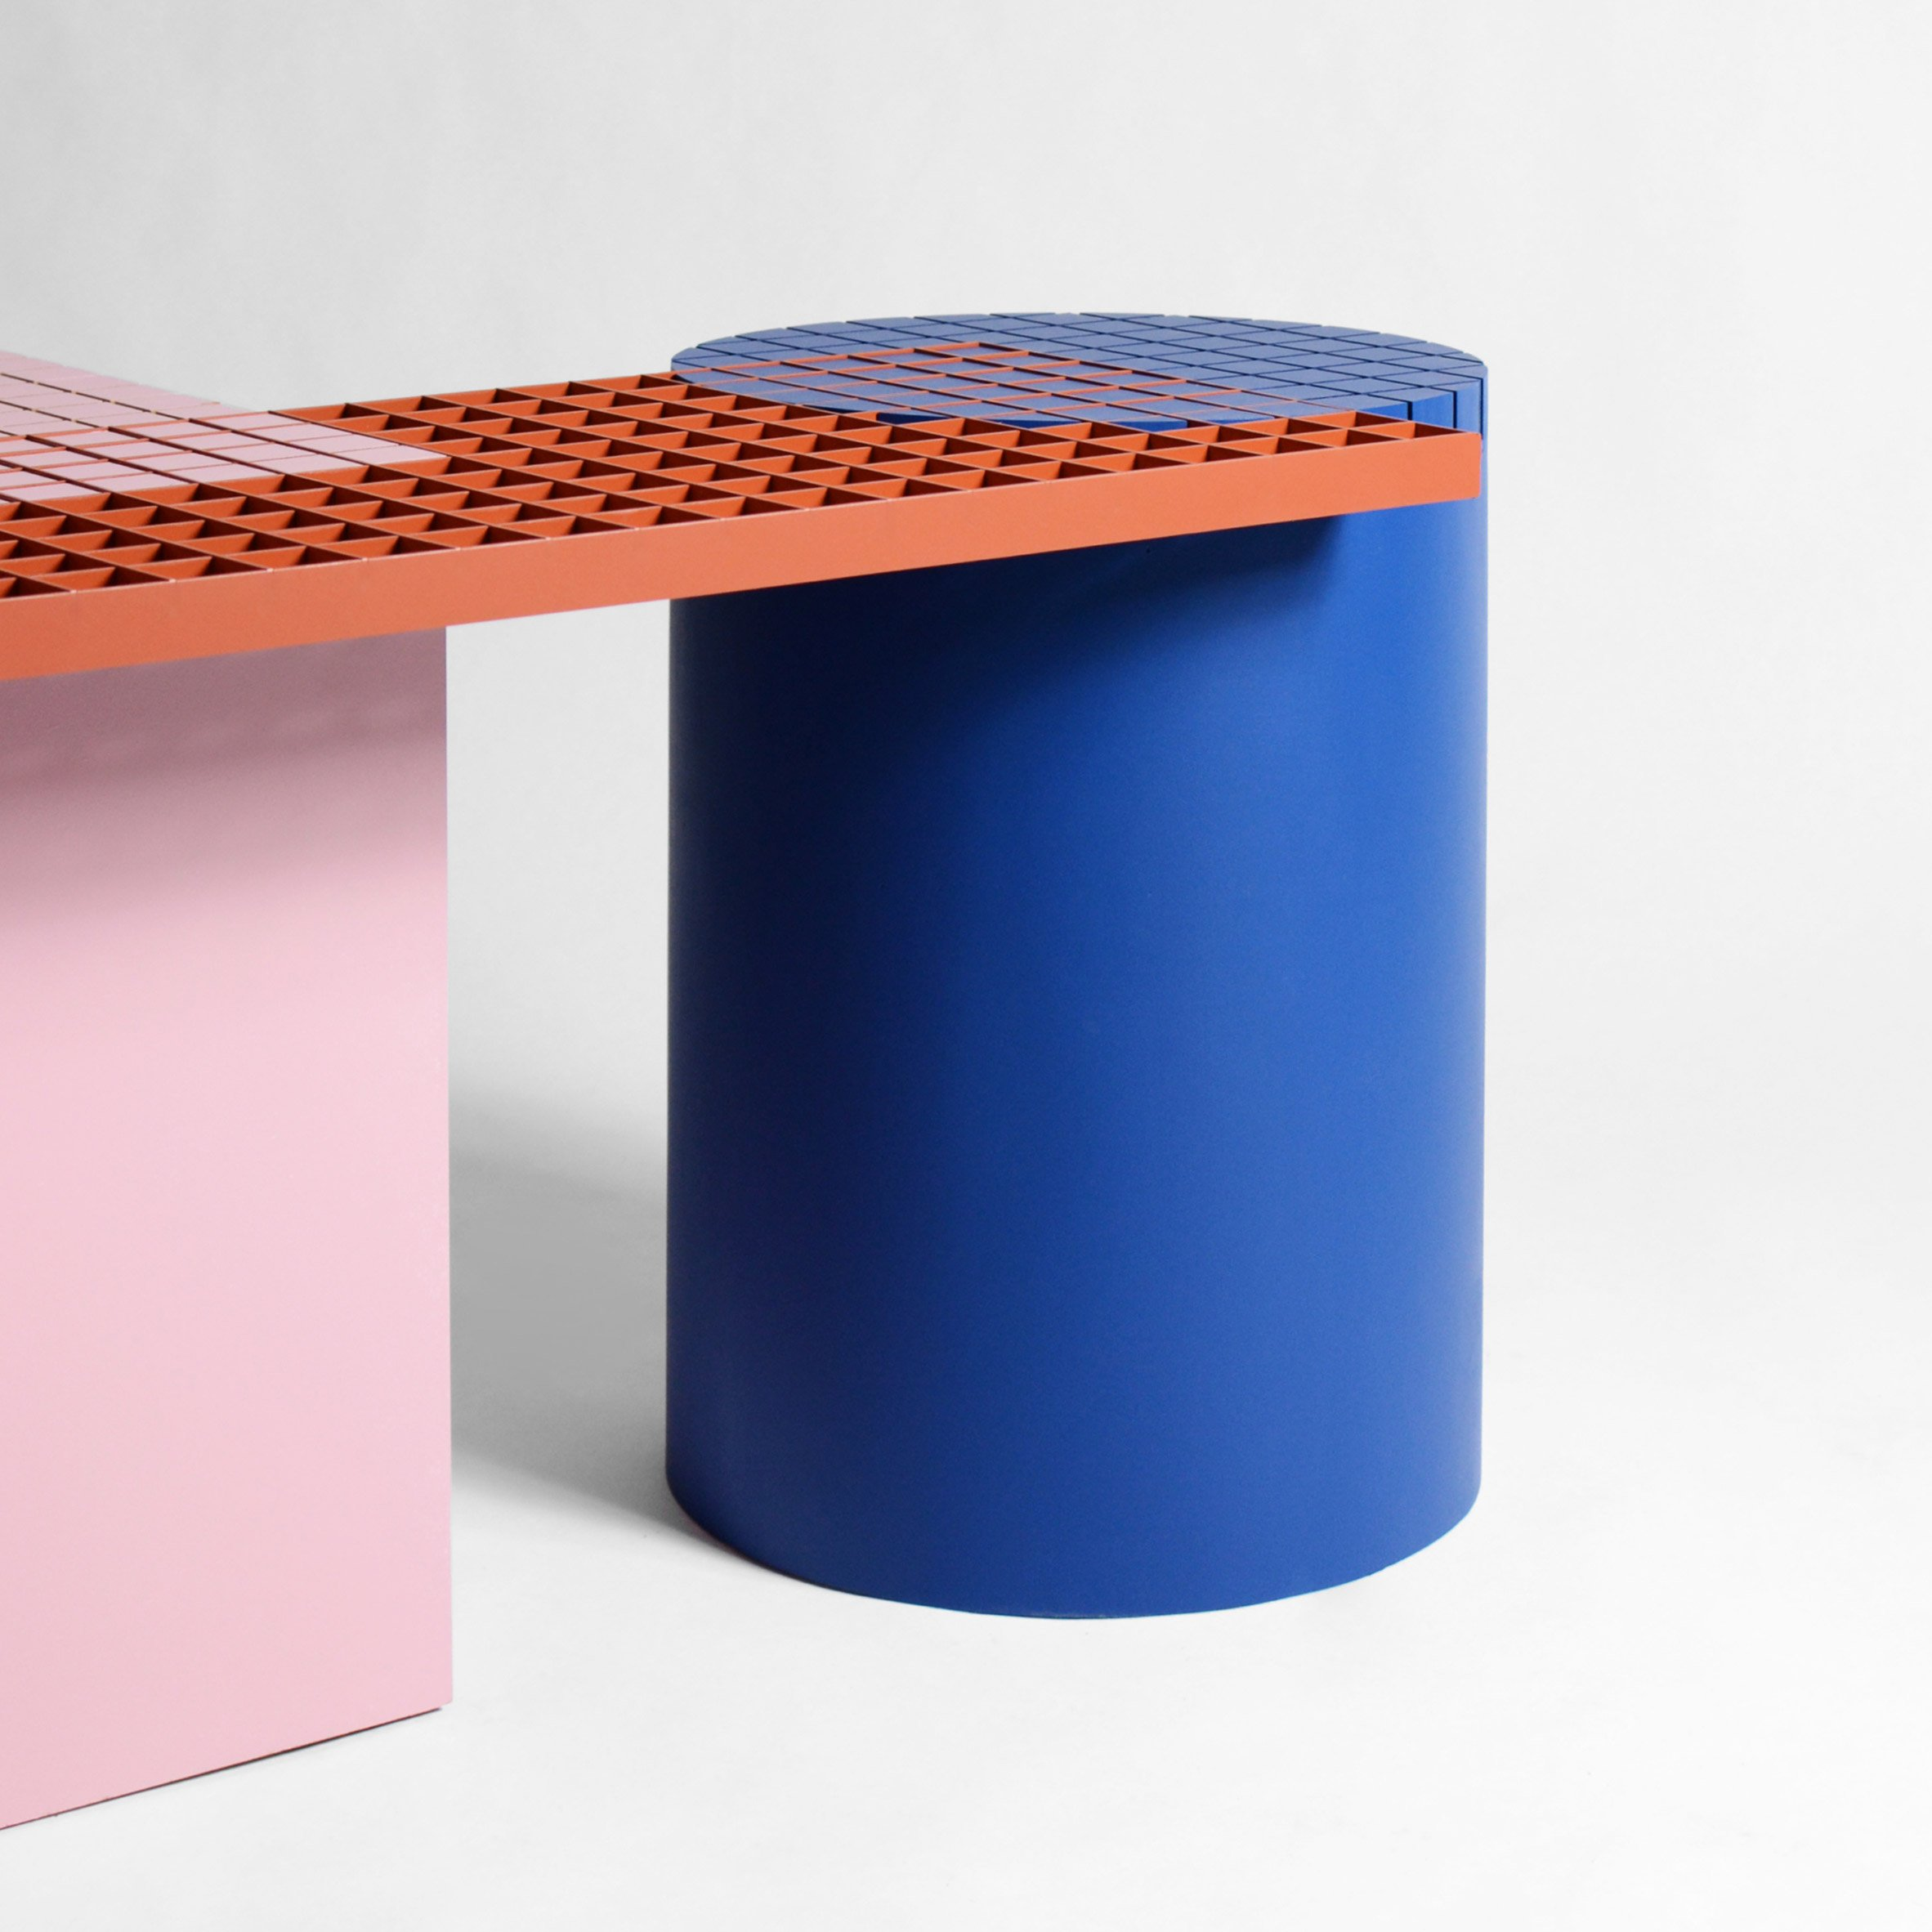 Urban Design Meubels.Urban Shapes Is A Colourful Geometric Bench By Nortstudio